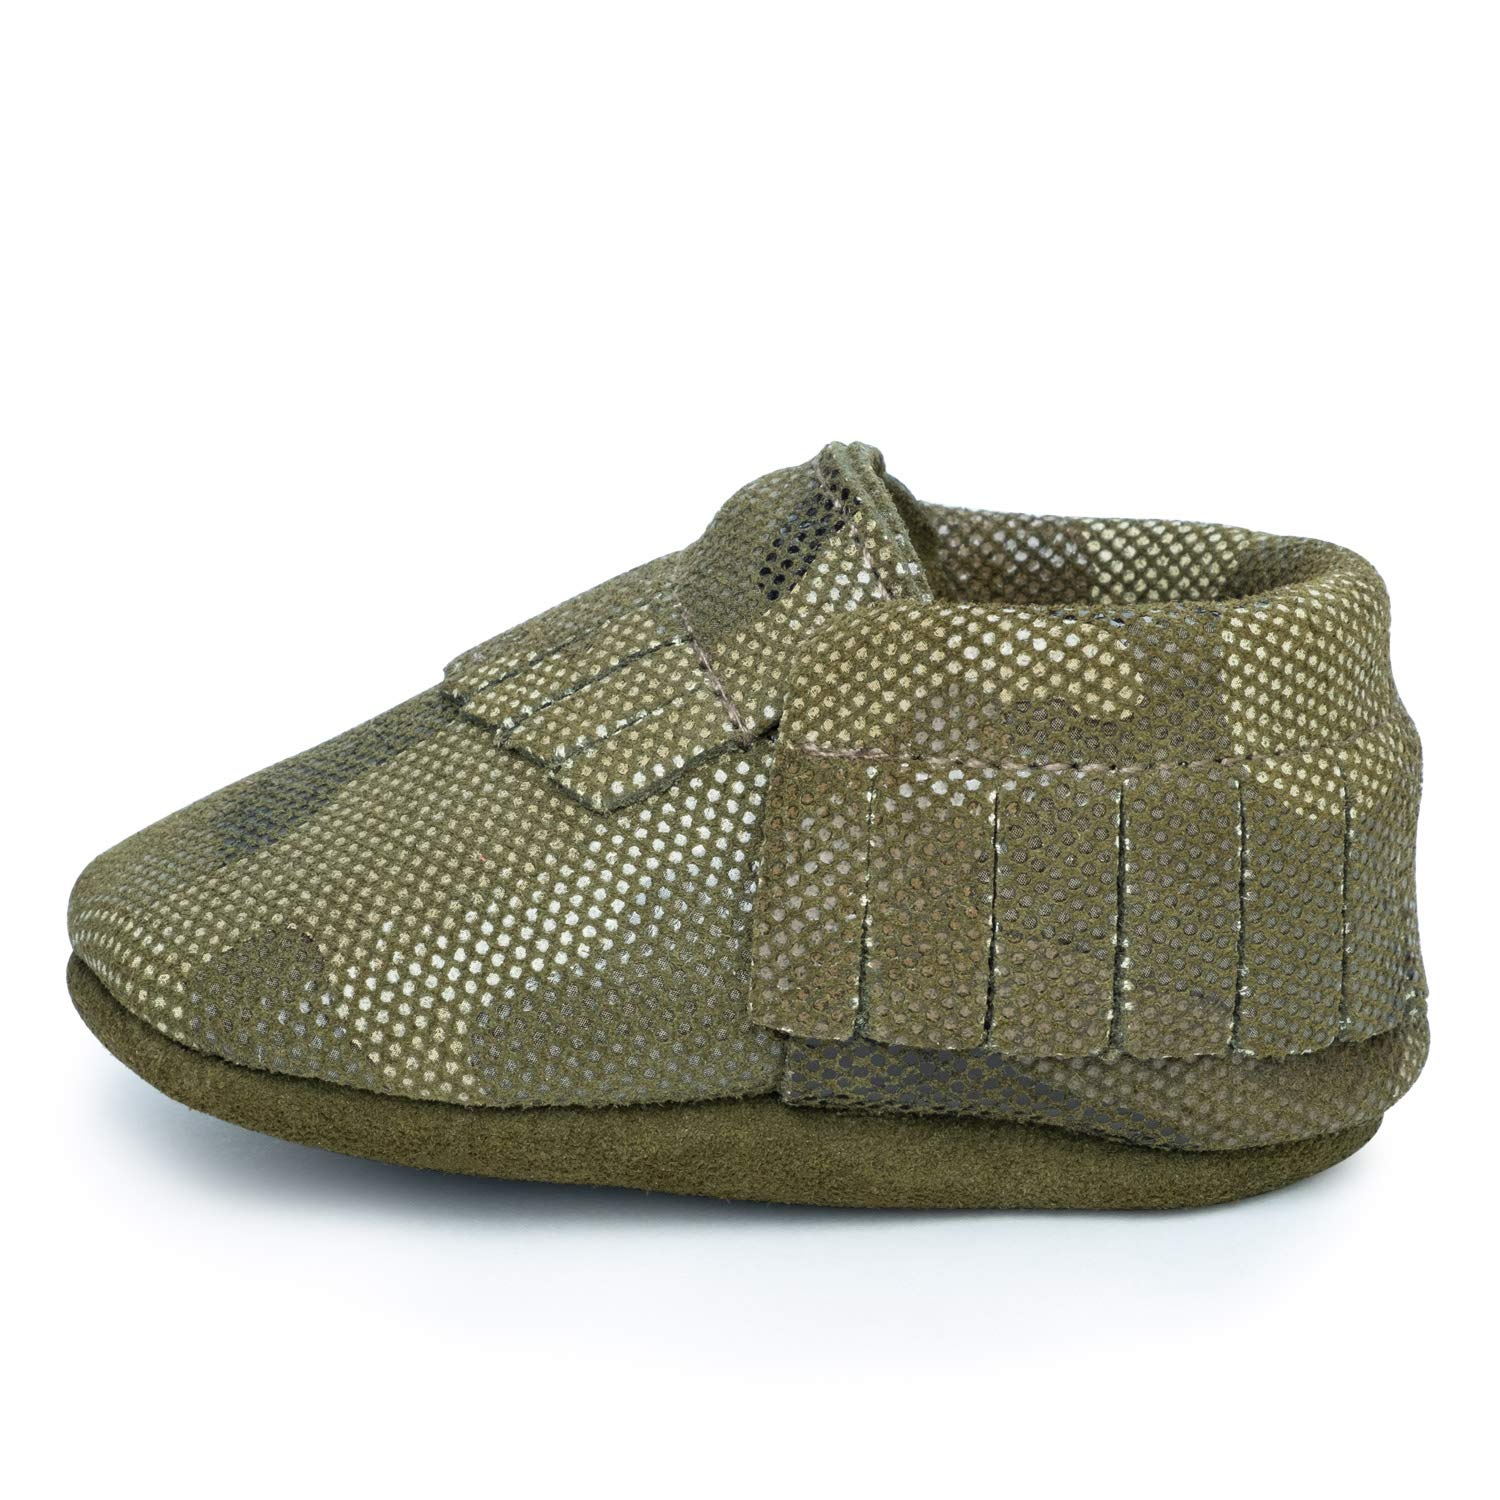 BirdRock Baby Moccasins - 30+ Styles for Boys & Girls! Every Pair Feeds a Child (Medium | 12-18 Months | US 5.5, Camo Green)